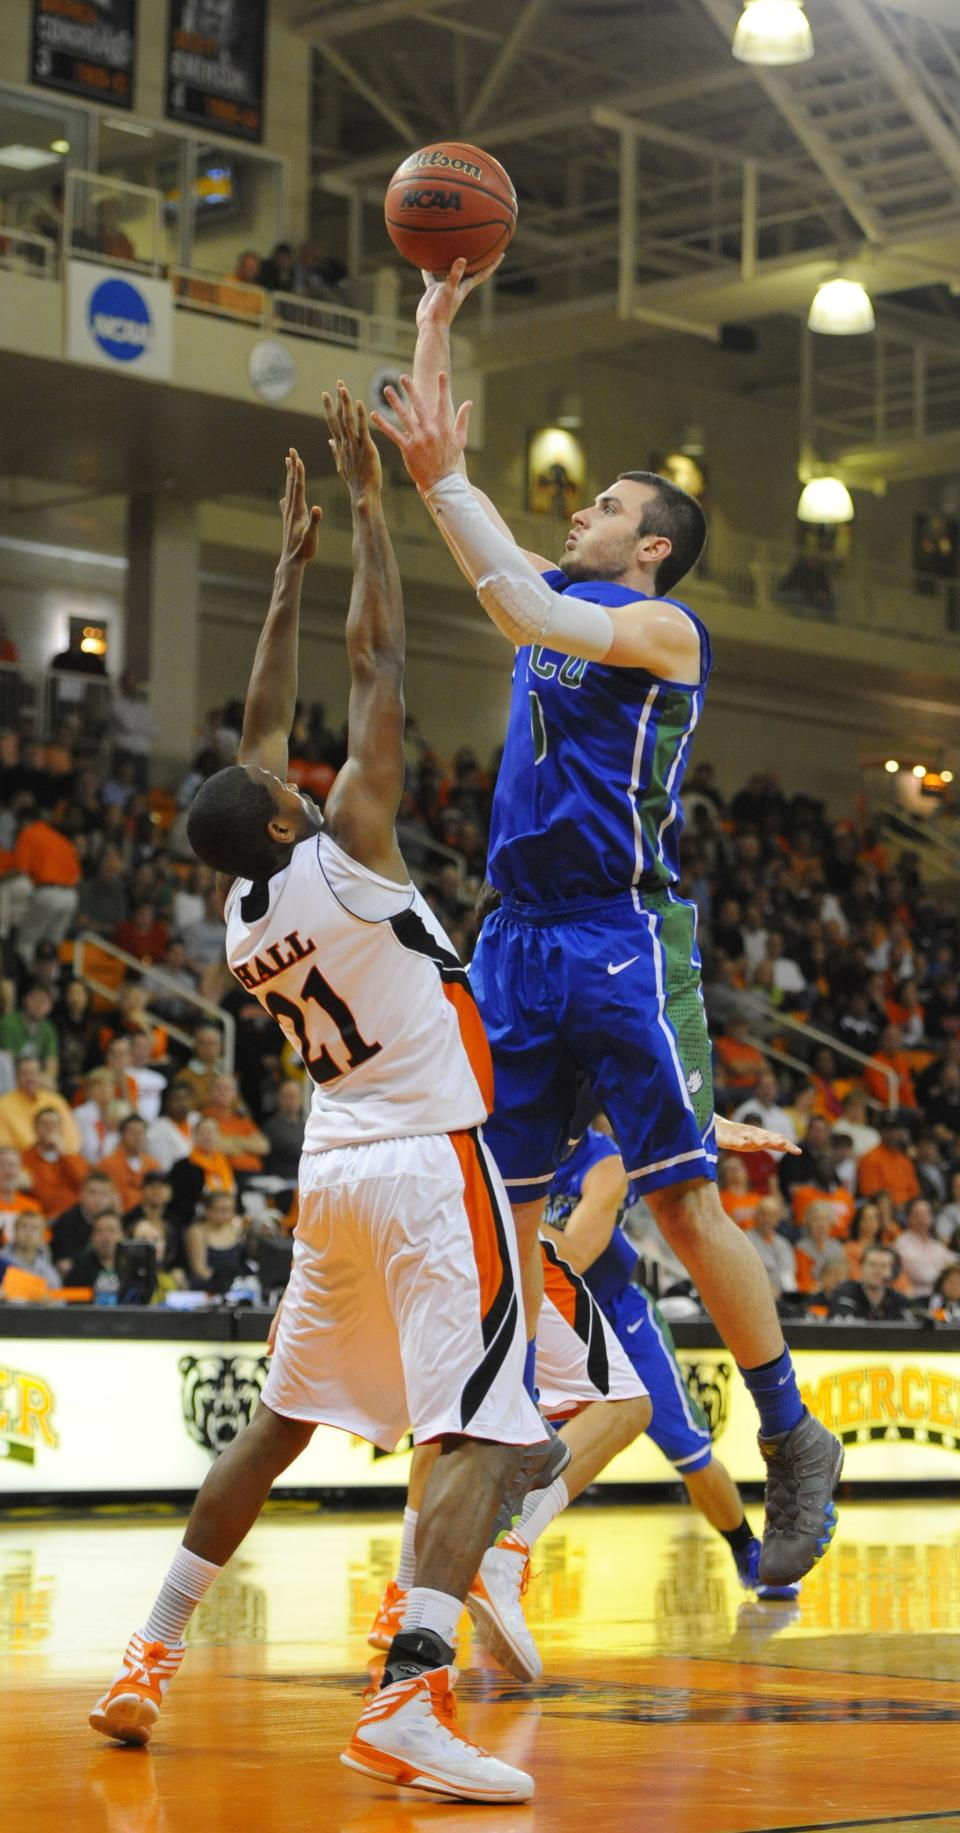 Mercer's Langston Hall (21) defends Florida Gulf Coast's Brett Comer during the first half of an NCAA college basketball game for the Atlantic Sun men's tournament championship in Macon, Ga., Saturday, March 9, 2013. Florida Gulf Coast won 88-75. (AP Photo/Woody Marshall)